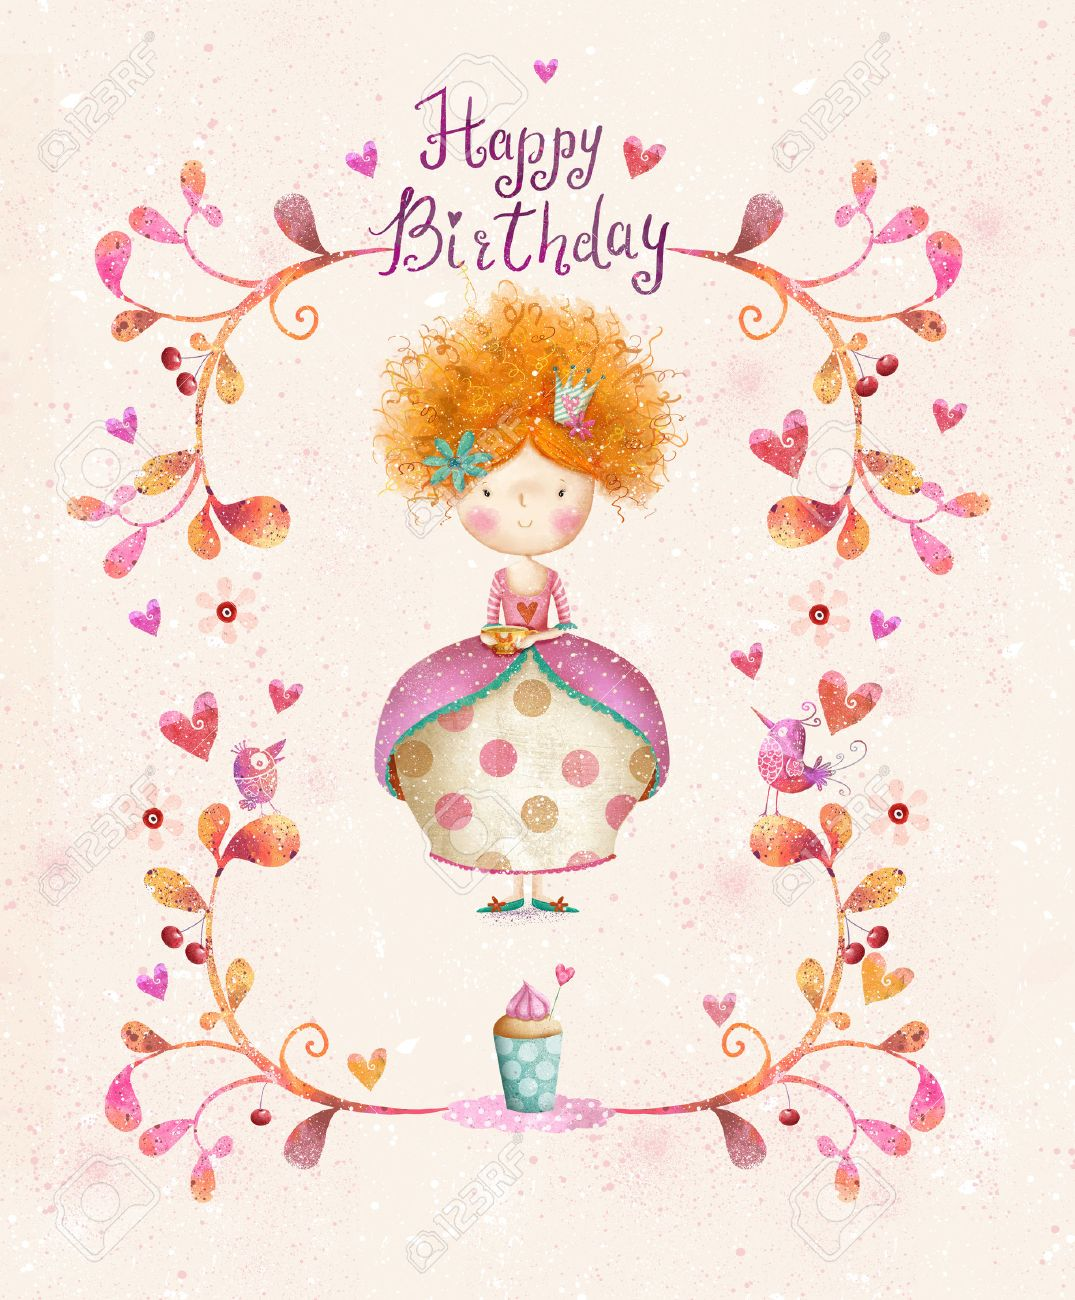 Awesome Happy Birthday Card In Cartoon Style Cute Small Princess – Happy Birthday Princess Card